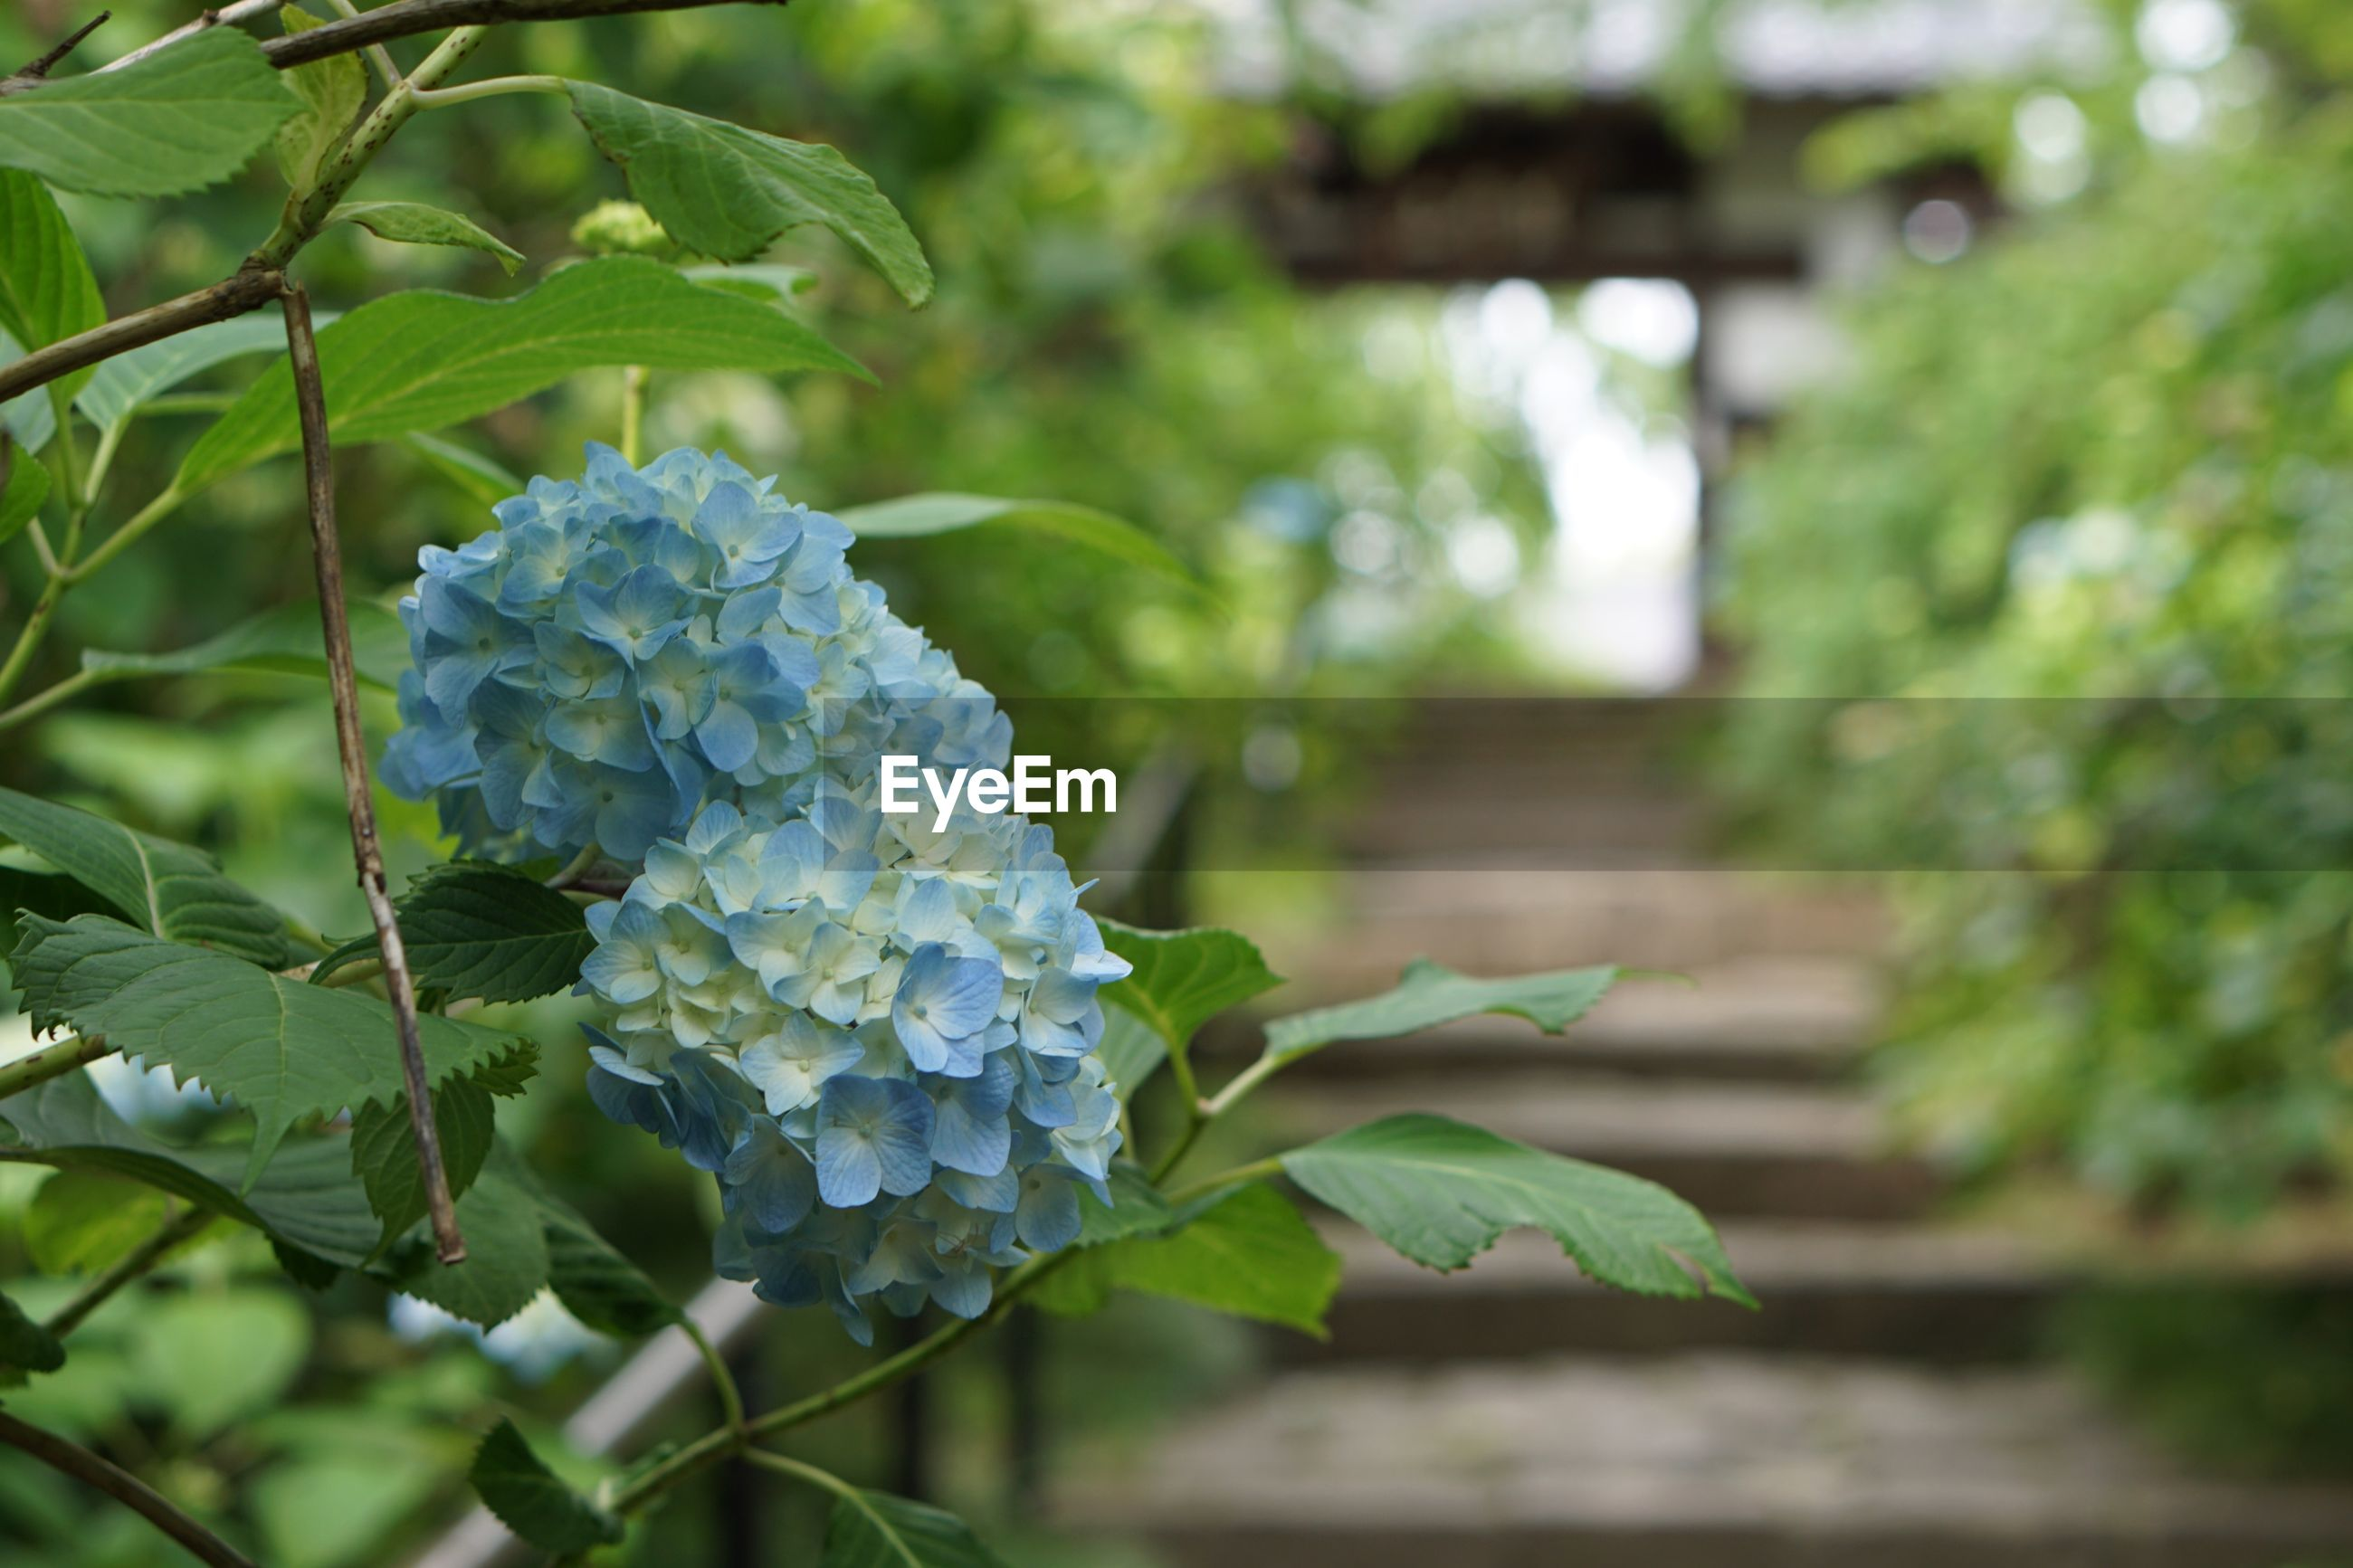 plant, growth, flowering plant, flower, freshness, beauty in nature, leaf, plant part, close-up, focus on foreground, green color, nature, day, vulnerability, hydrangea, fragility, no people, petal, outdoors, inflorescence, flower head, bunch of flowers